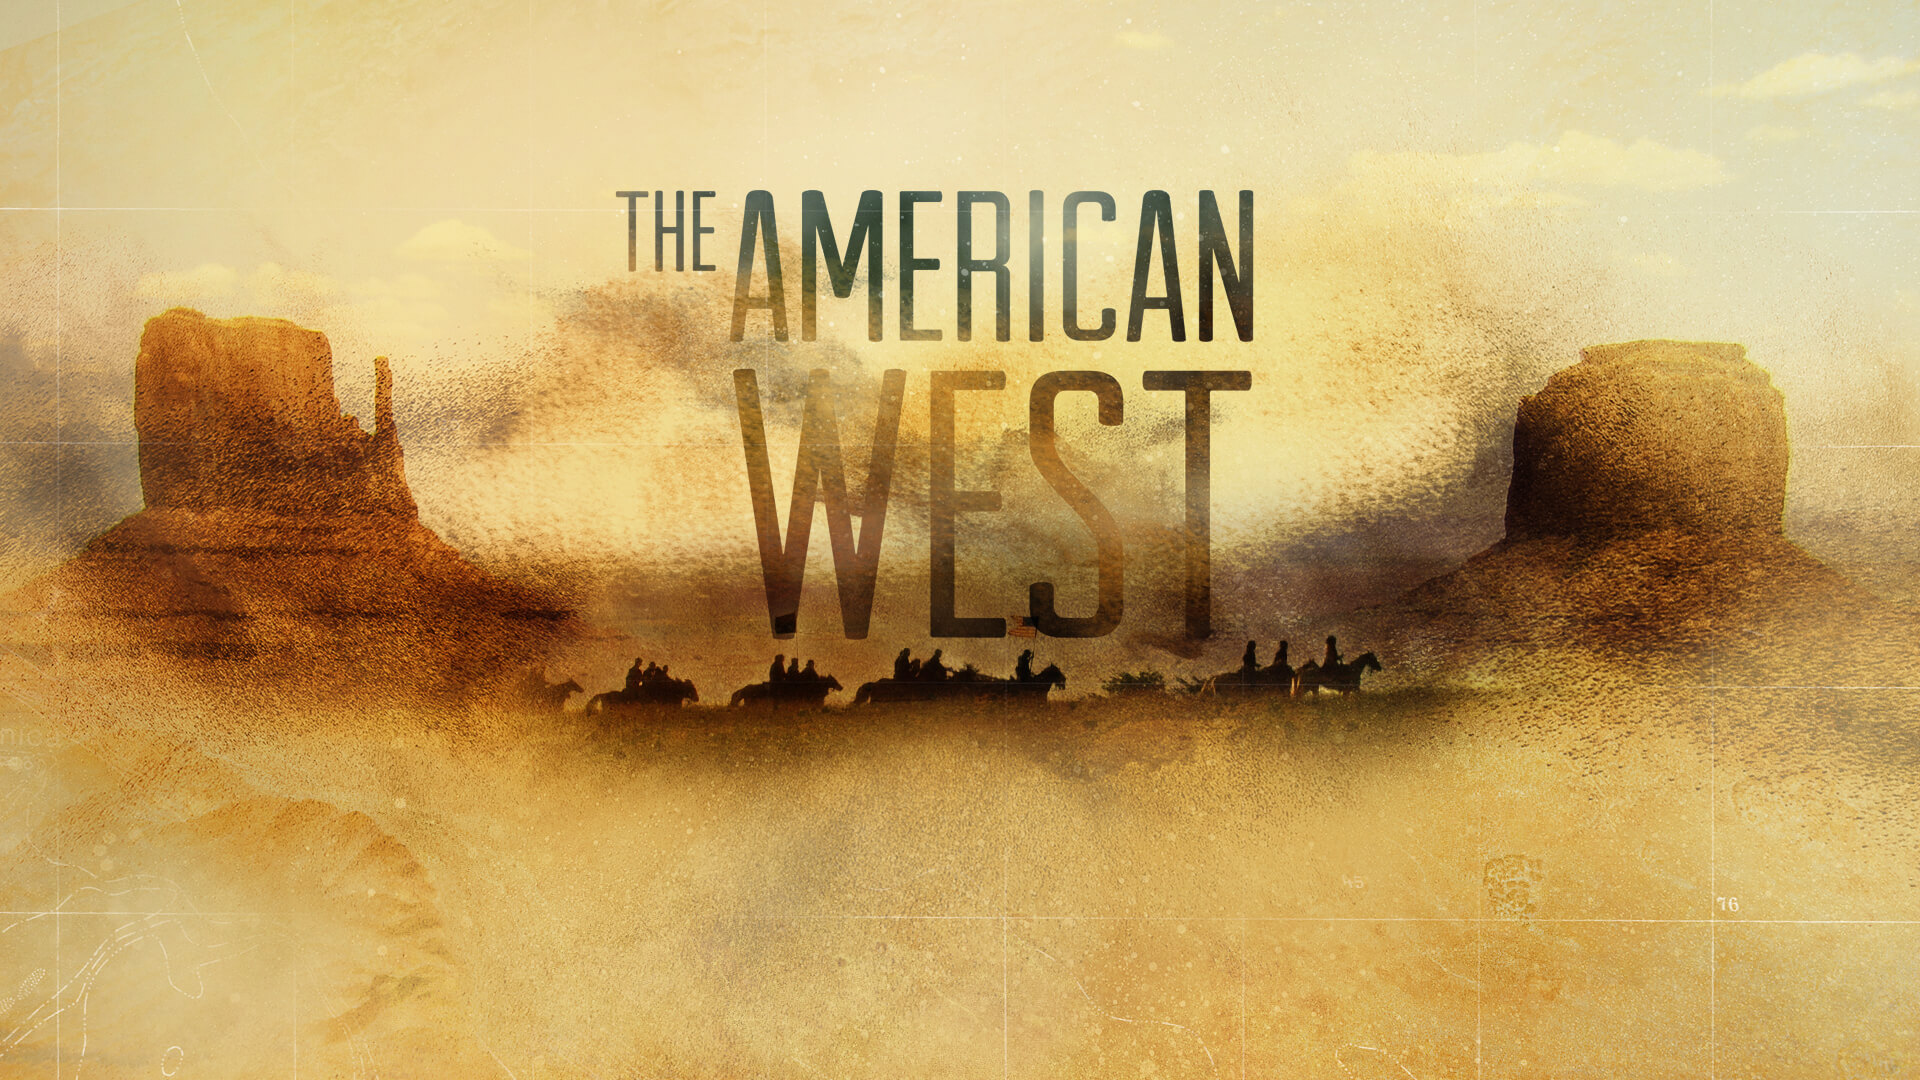 151030_AMC_THEWEST_TITLE_C_SML.jpg